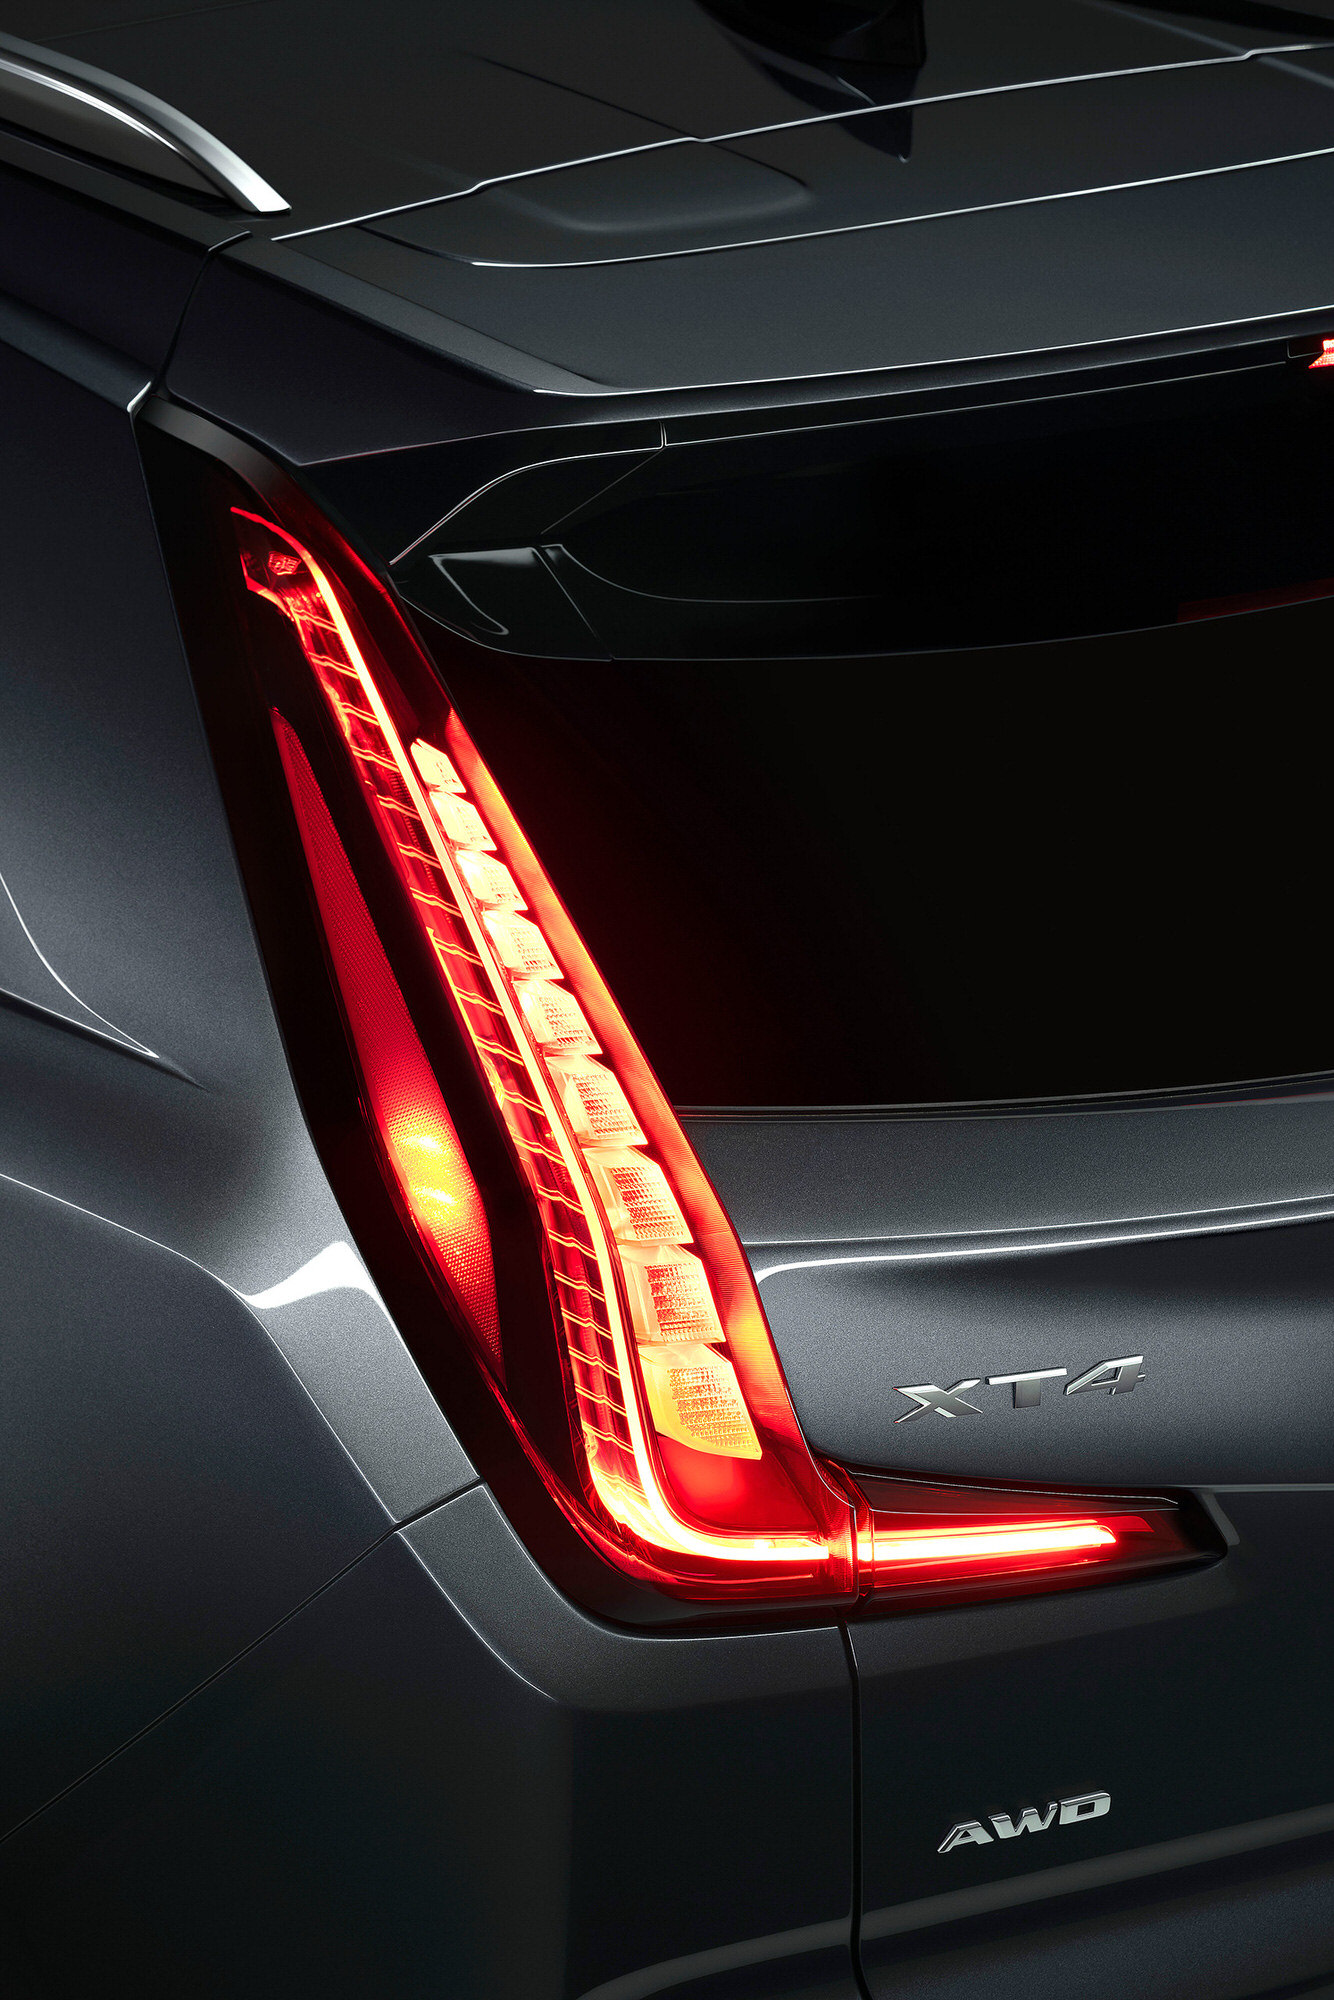 Cadillac XT4 tail light commercial studio photography